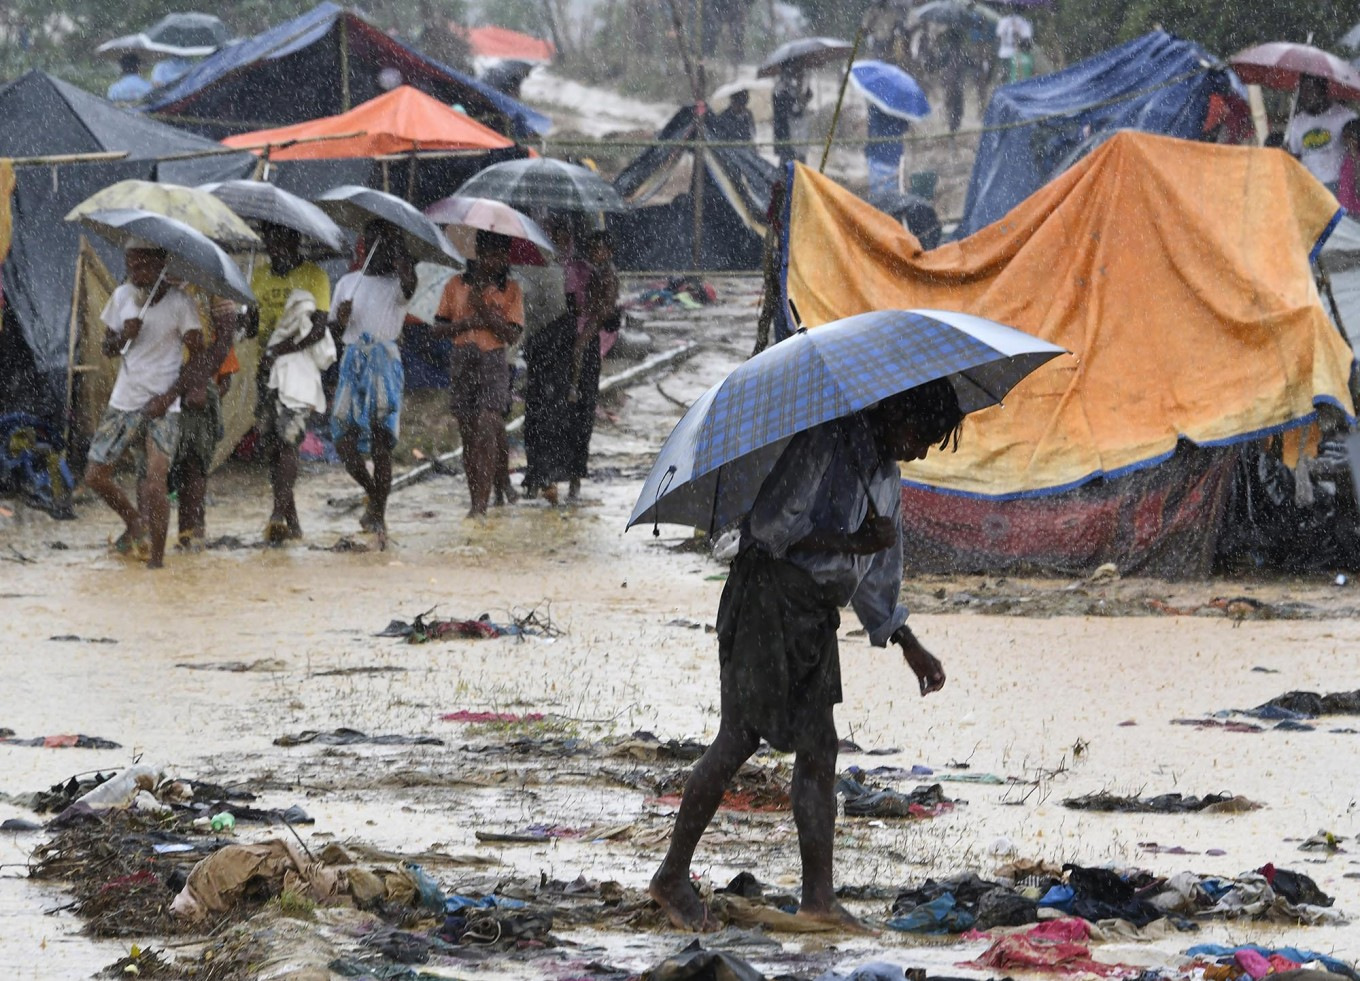 A Rohingya refugee holds an umbrella during rain in Bangladesh's Balukhali refugee camp on September 17, 2017. Monsoon rain amid a drive to move hundreds of thousands of Muslim Rohingya out of makeshift camps added to the misery of the refugees on September 17 who have fled violence in Myanmar for Bangladesh. AFP/ Dominique Faget